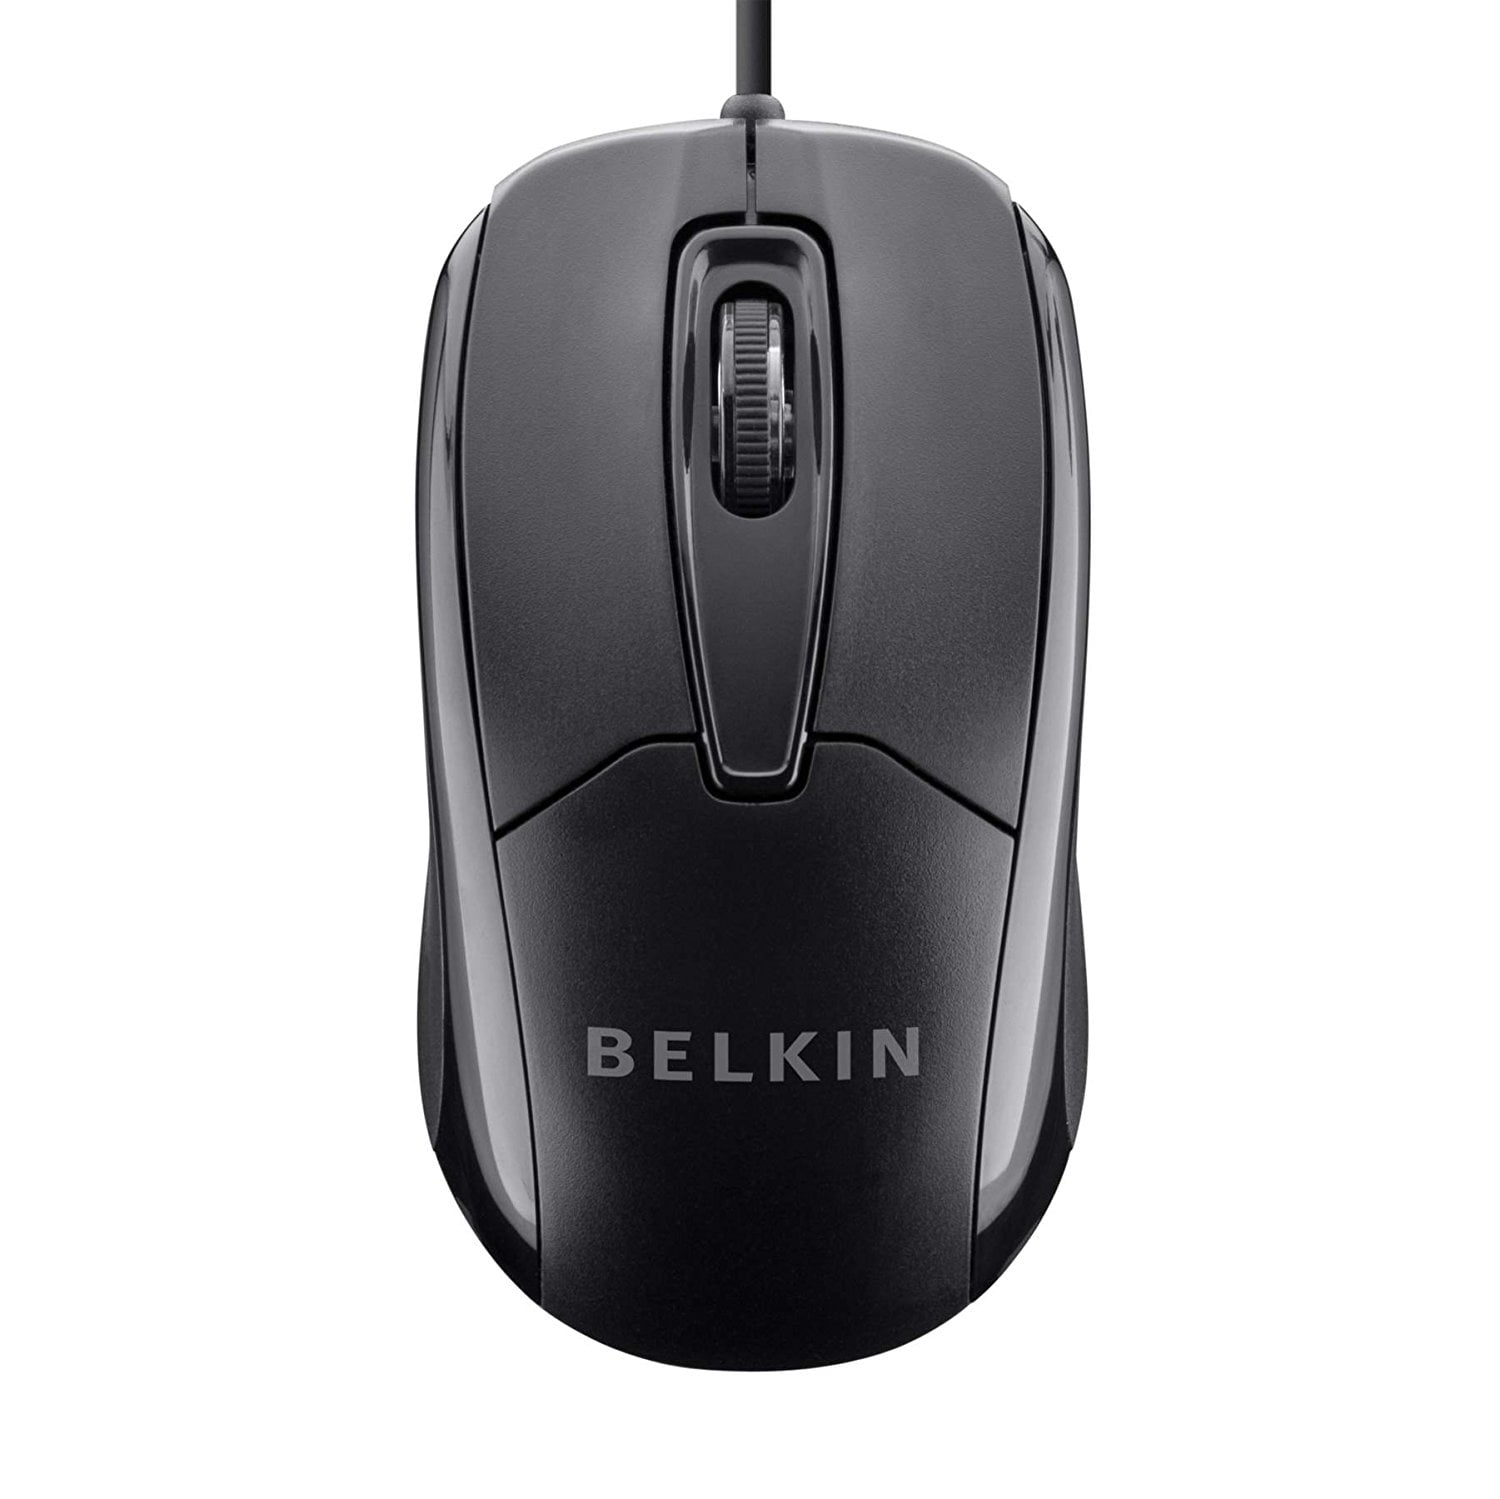 Belkin 3-Button Wired USB Optical Ergonomic Mouse with 5-Foot Cord